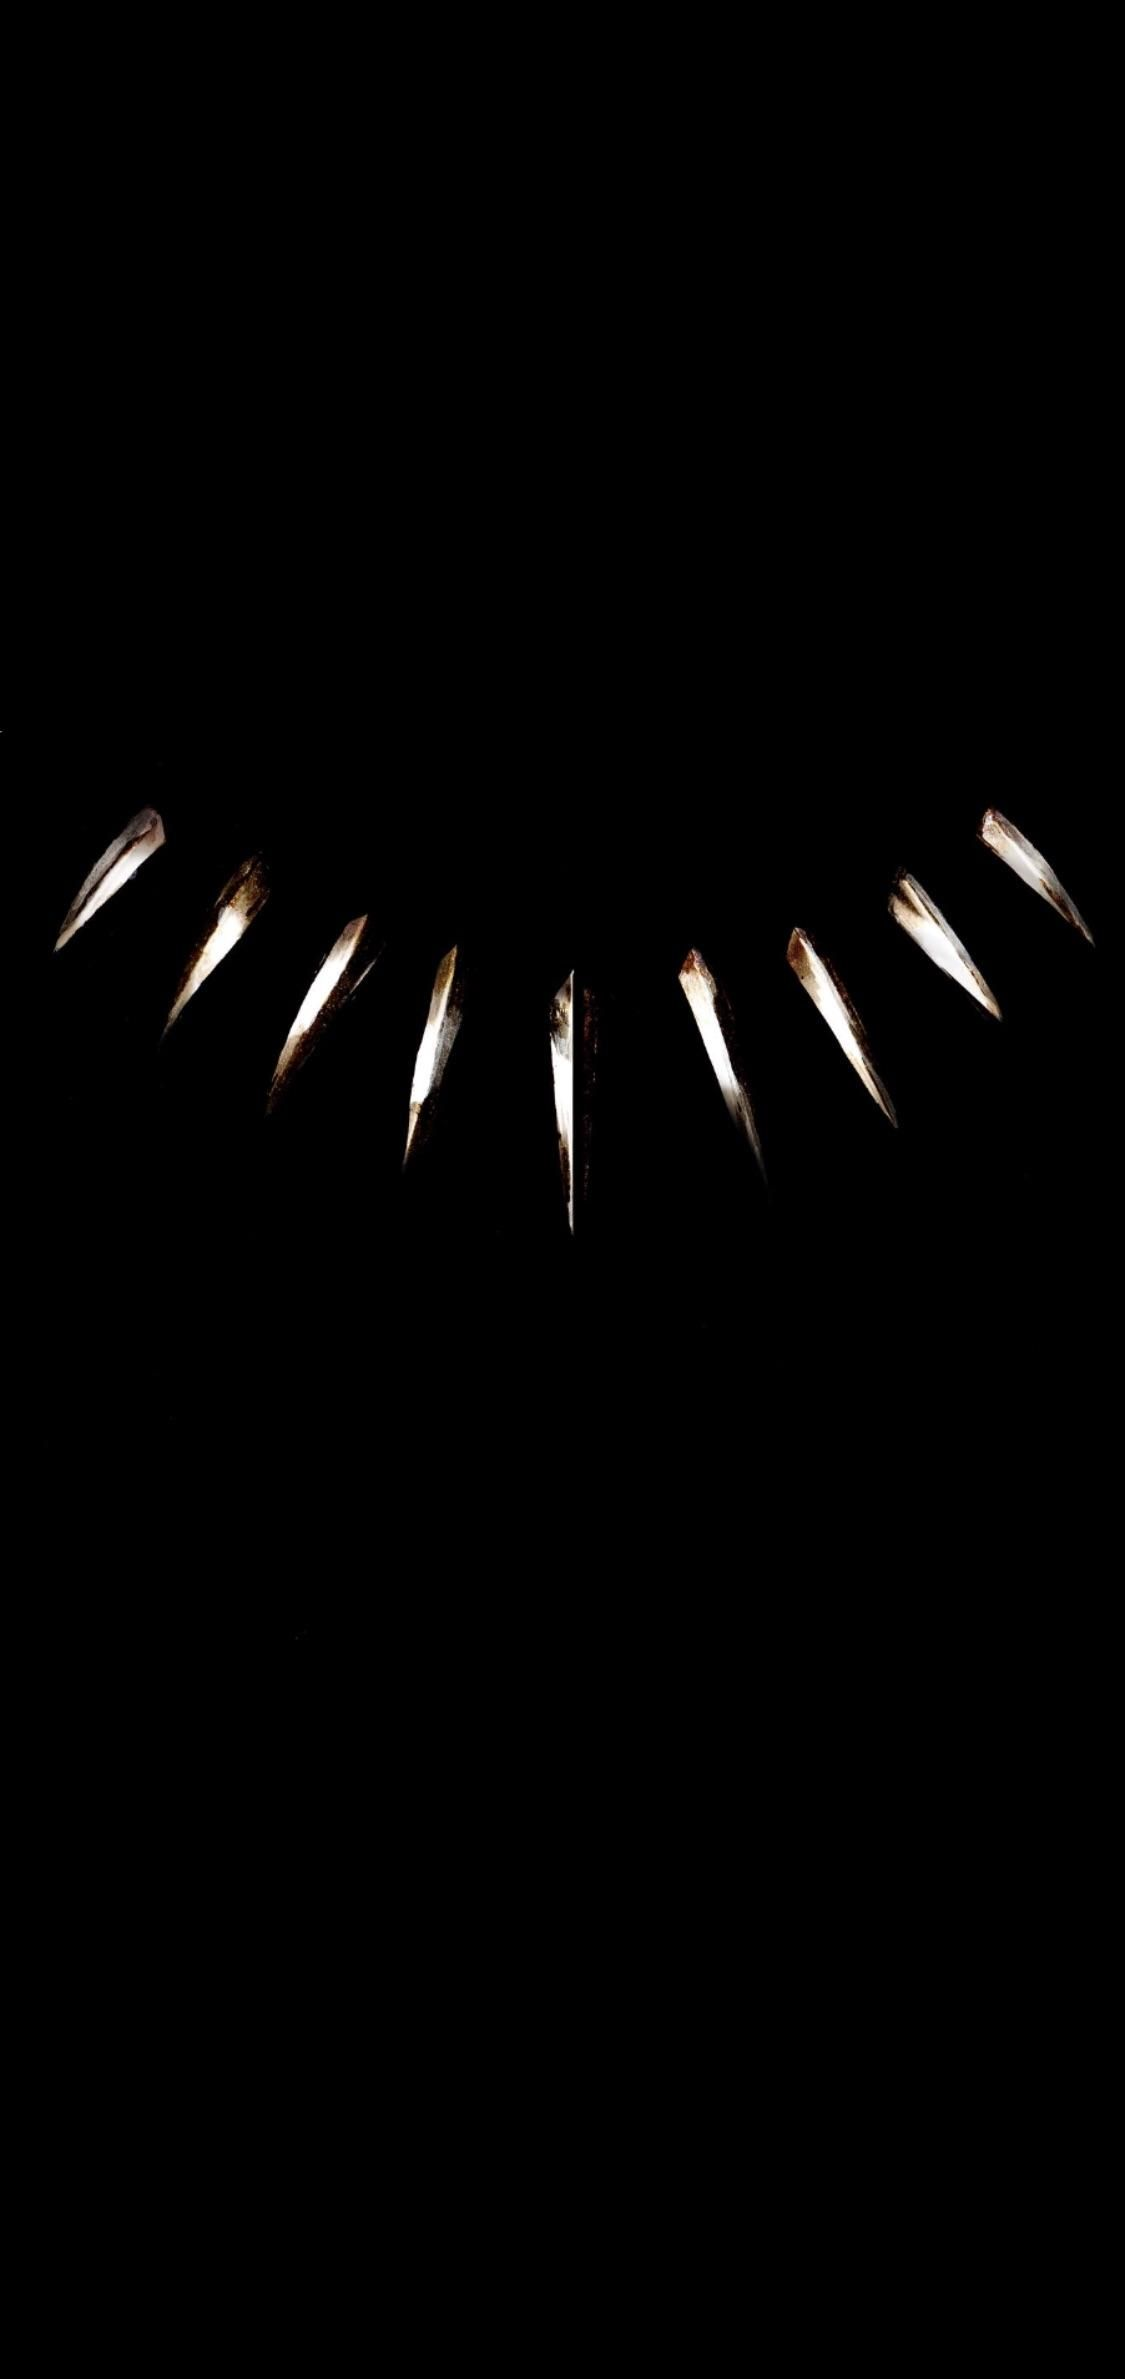 Very Very Simple Black Panther Phone Wallpaper I Made Hope You All Enjoy It As Much As I Do Black Panther Art Black Wallpaper Black Panther